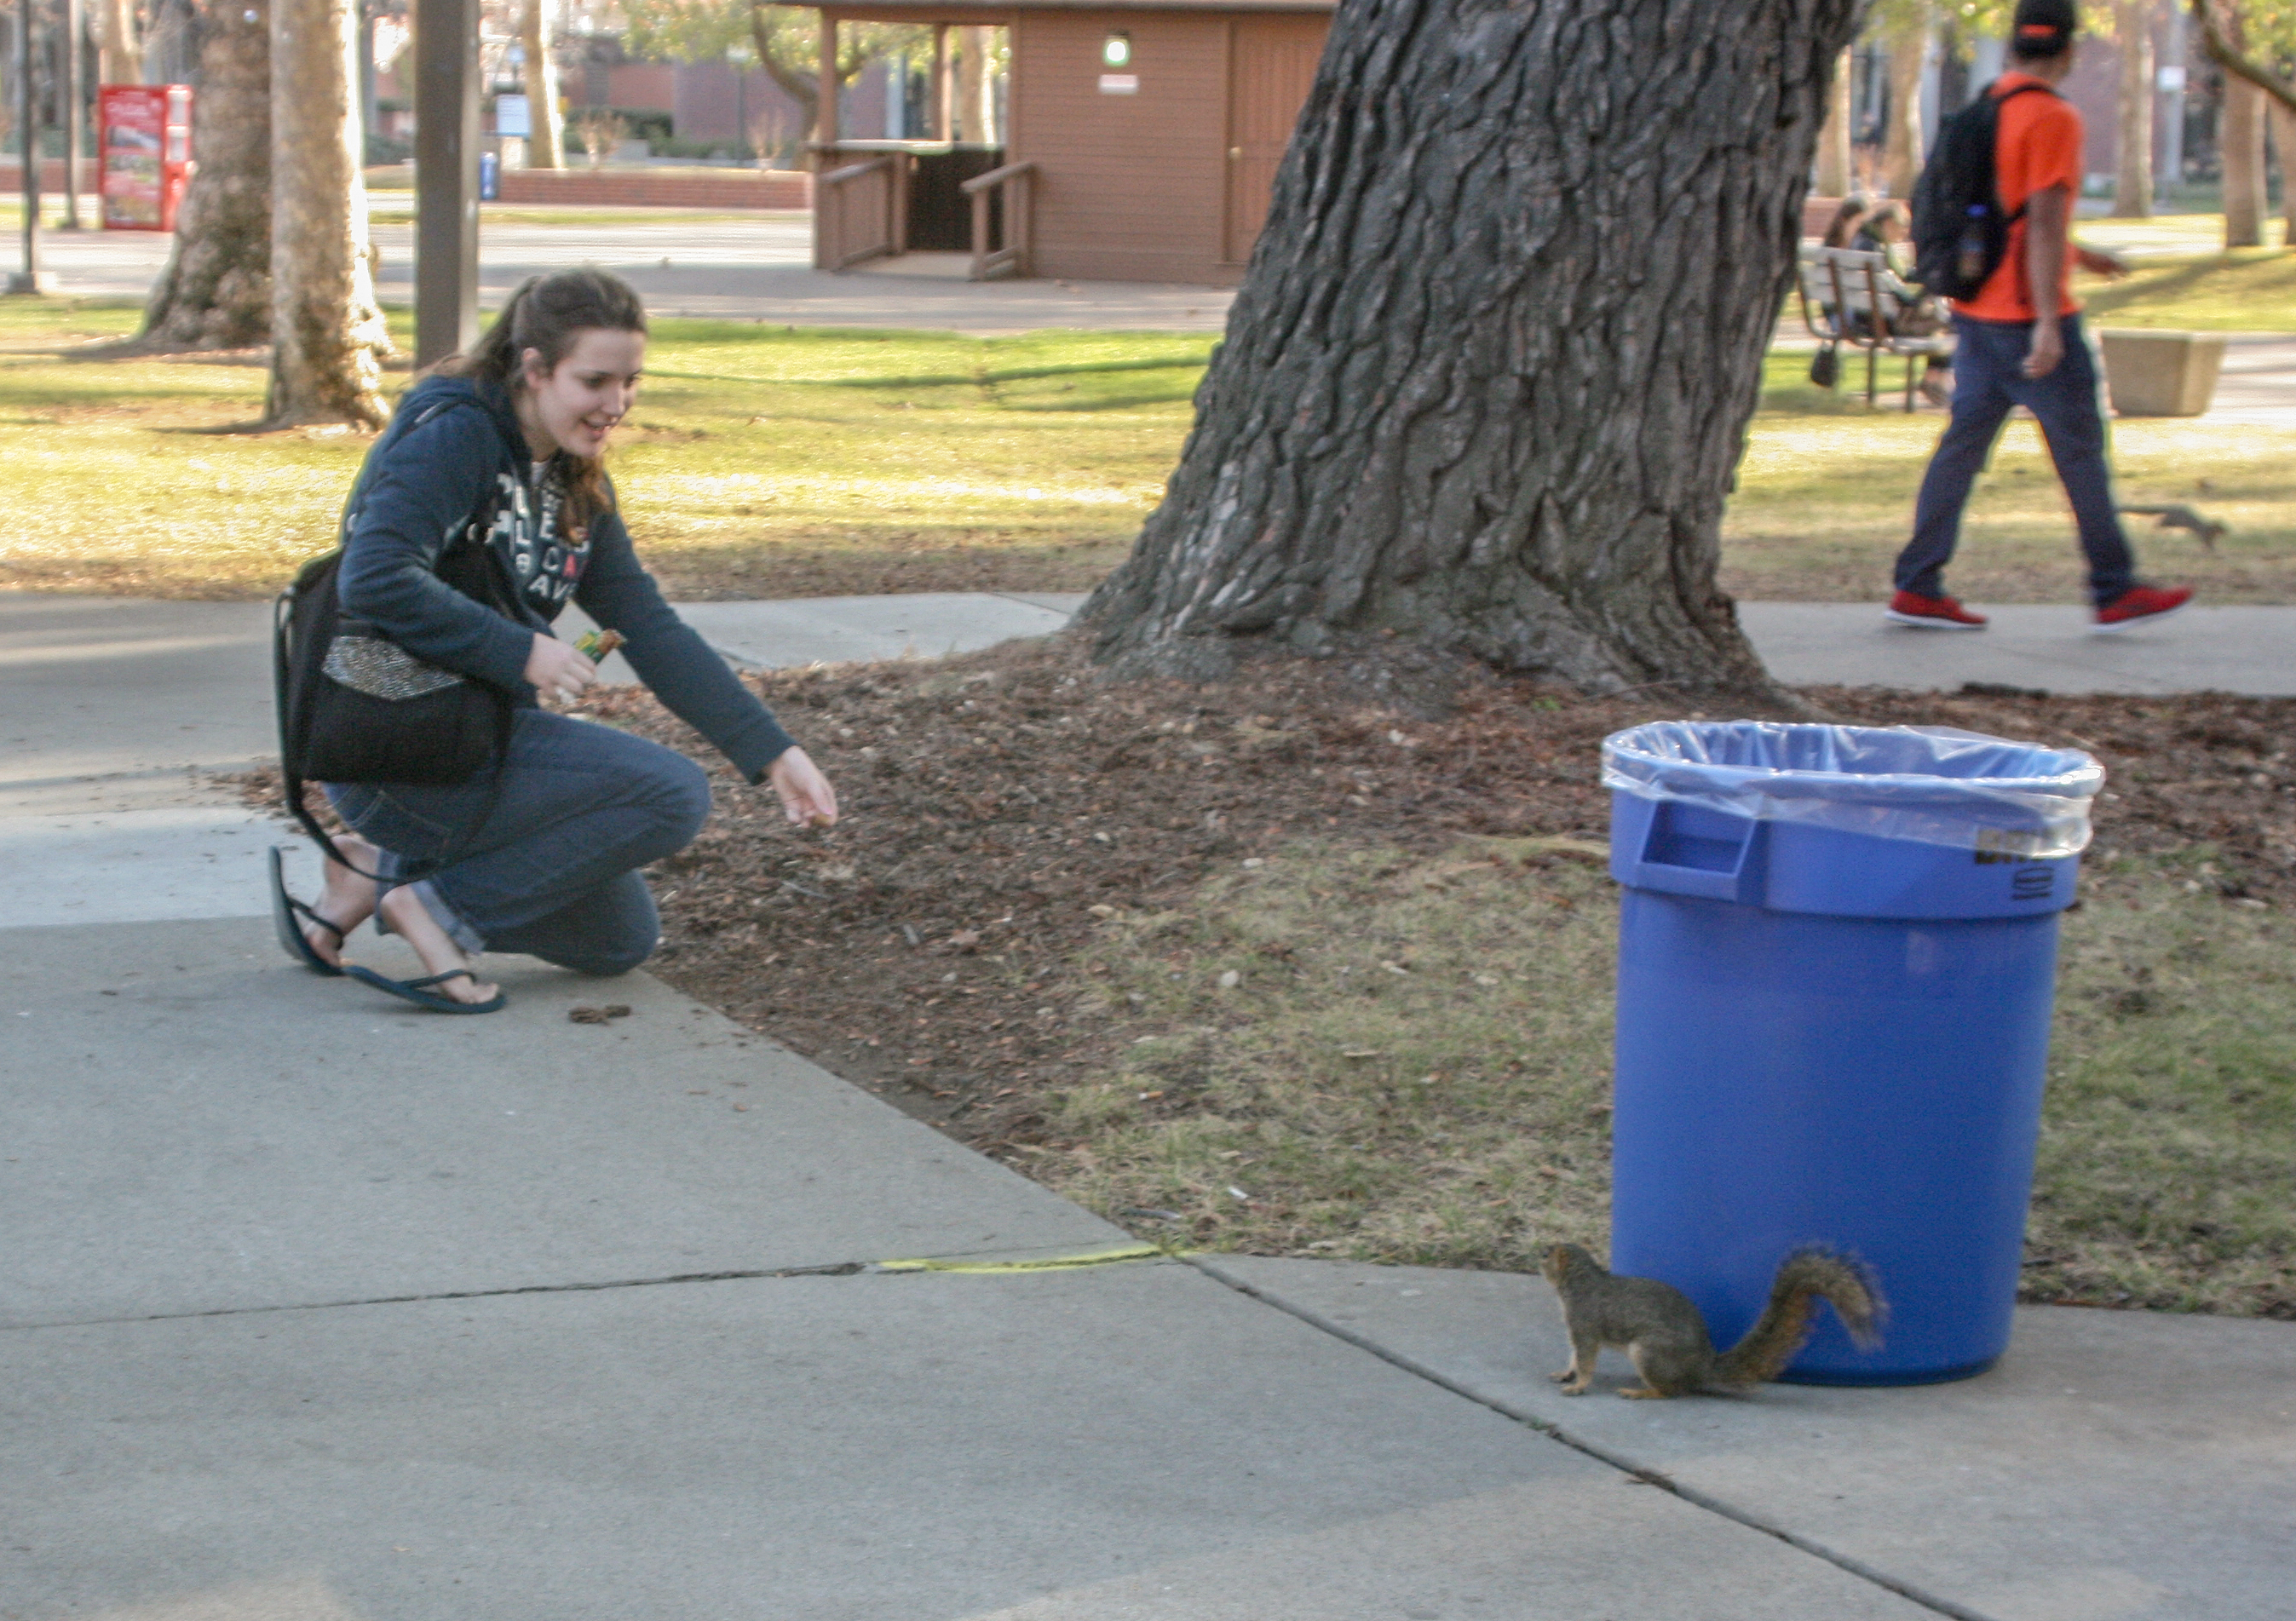 City College biology major Sarah Harms feeds a squirrel Jan. 24 in the Quad. Teri Barth | Online Editor | express.teri.barth@gmail.com